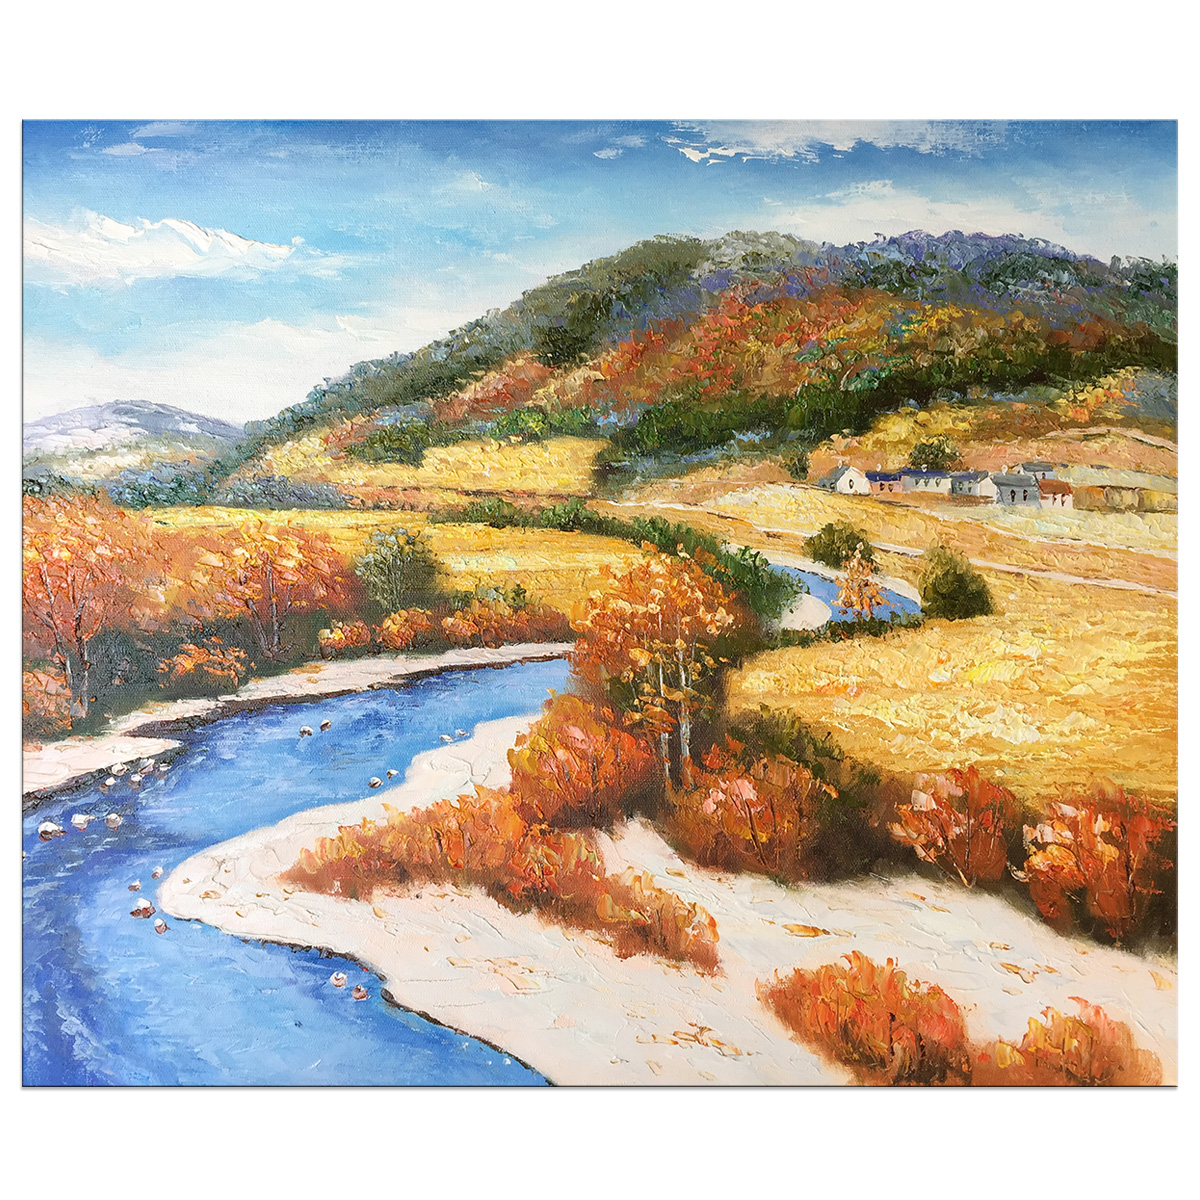 Hand Painted Abstract River Landscape Artwork Oil Paintings on Canvas Wall Art for Living Room